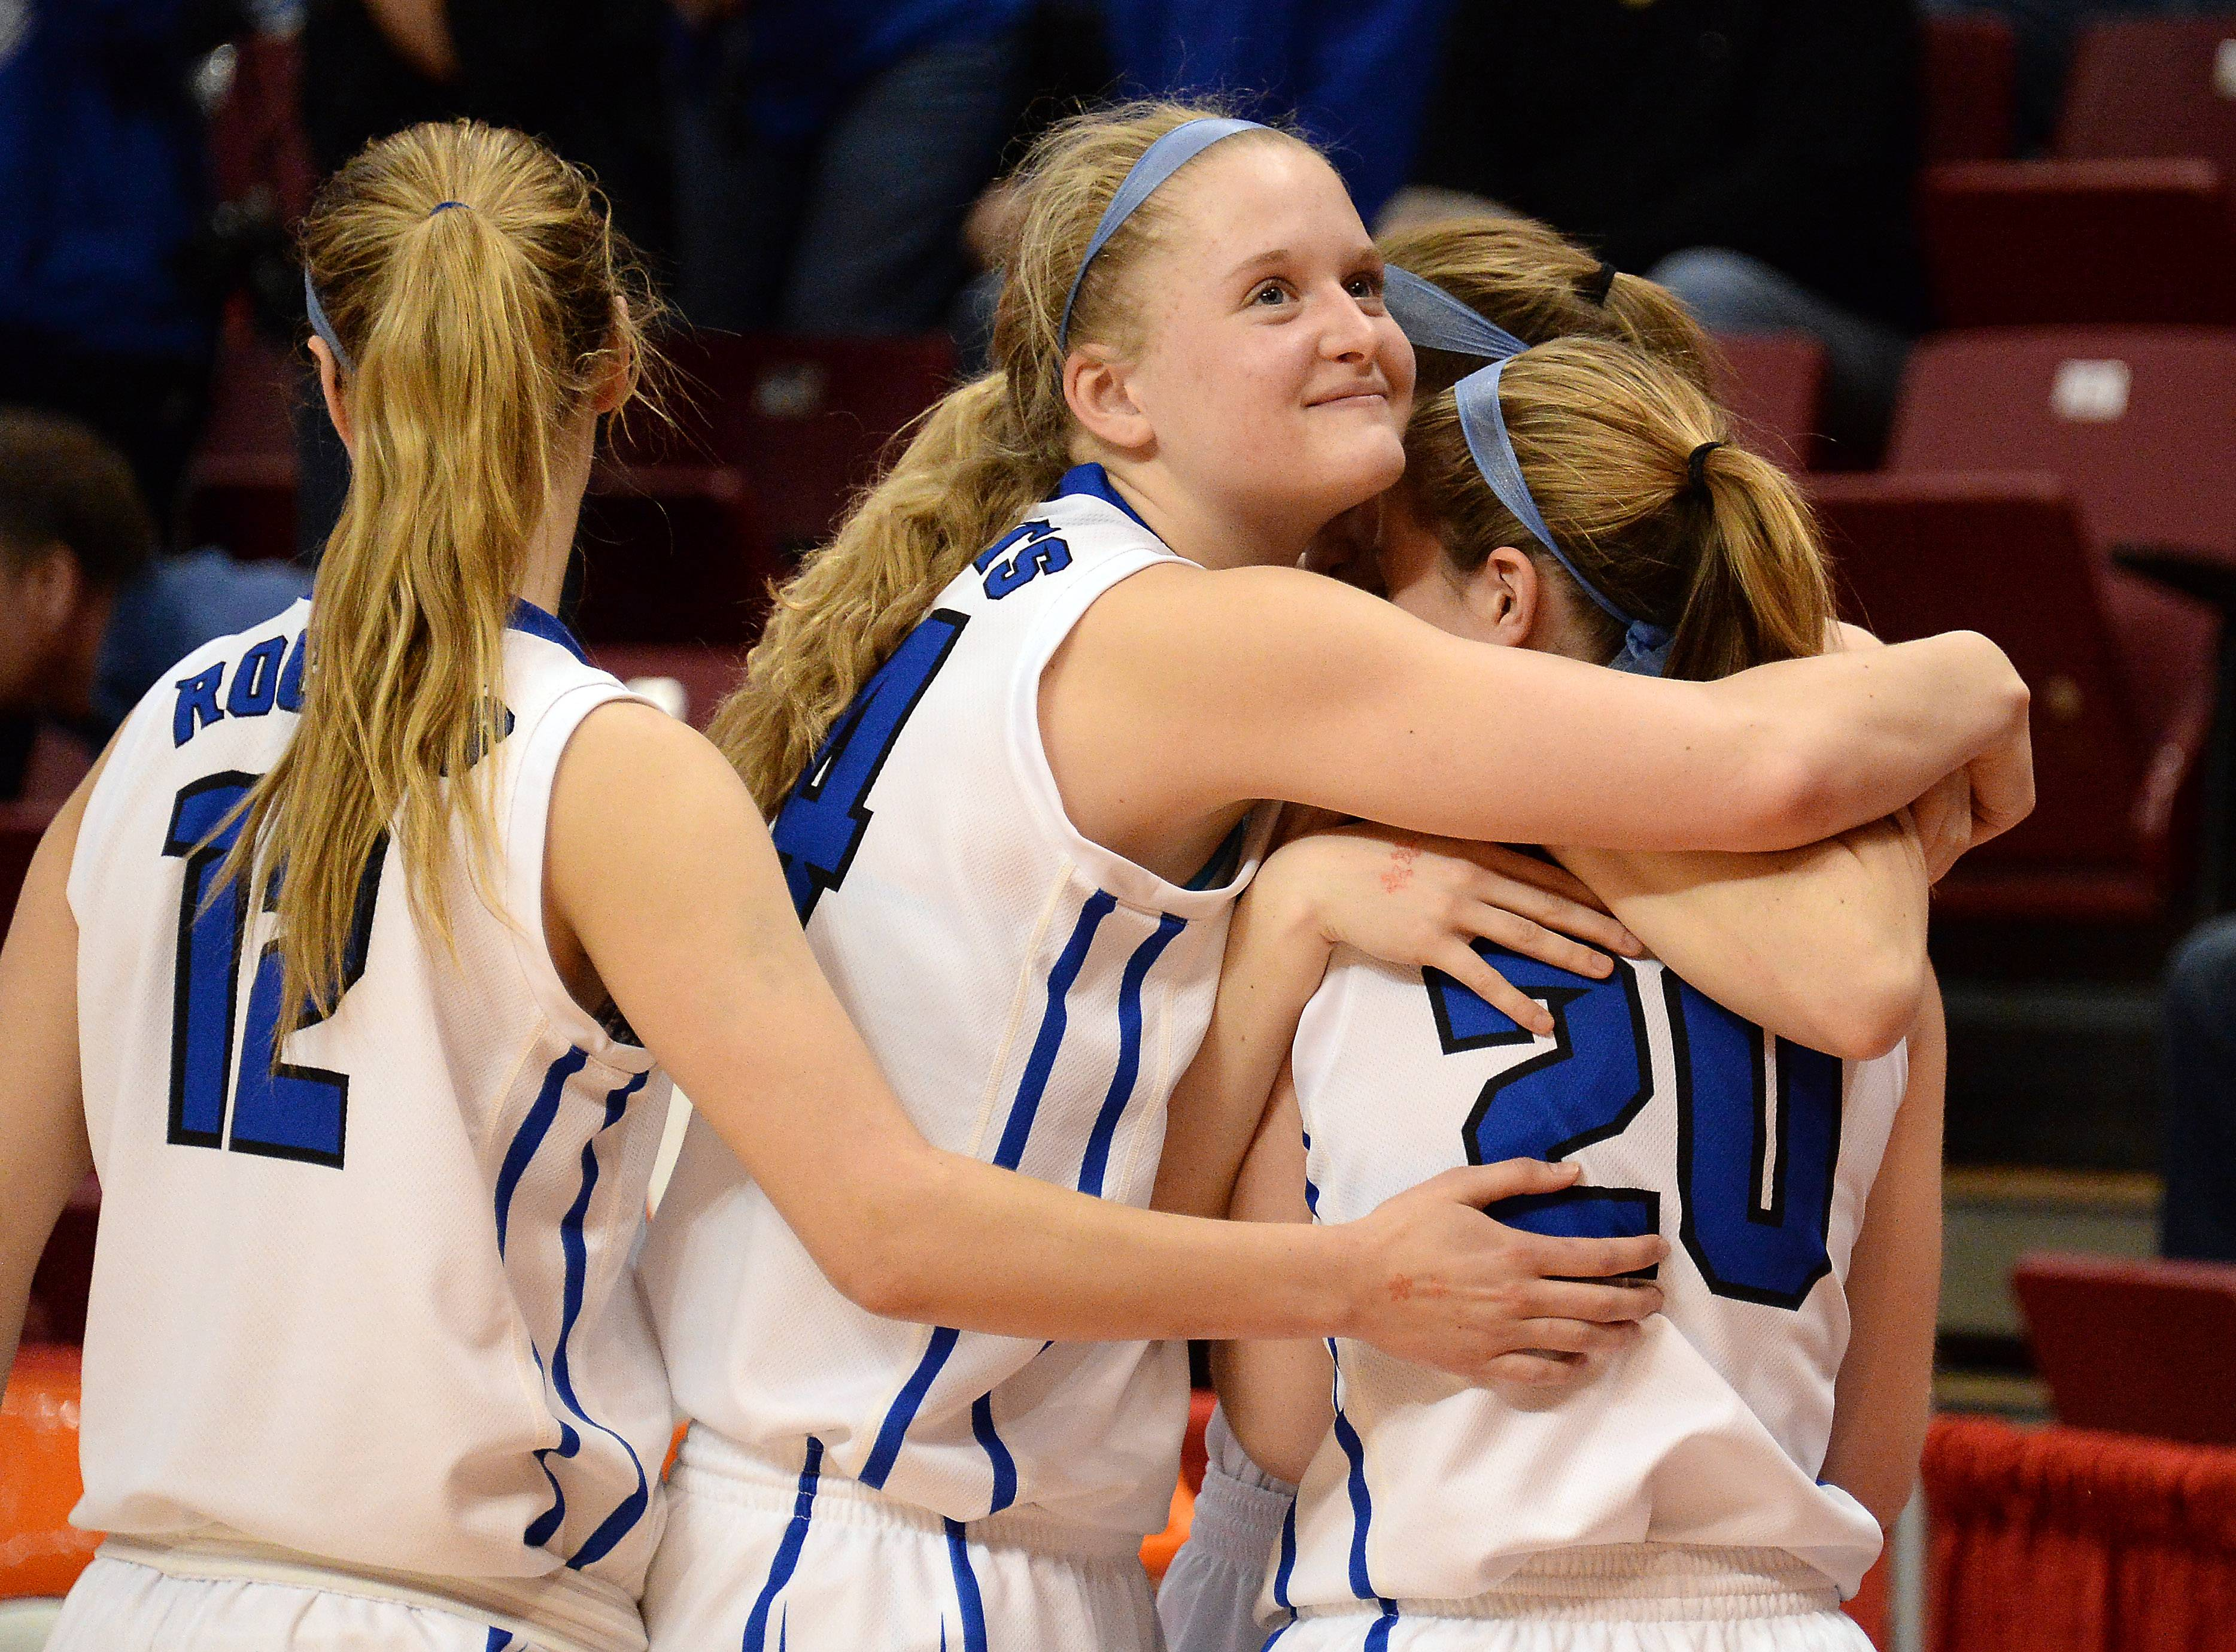 Burlington Central's Shelby Holt, Sam Pryor, Kayla Ross and Kathleen Ratzek all come together as their season comes to an end Saturday in Normal.